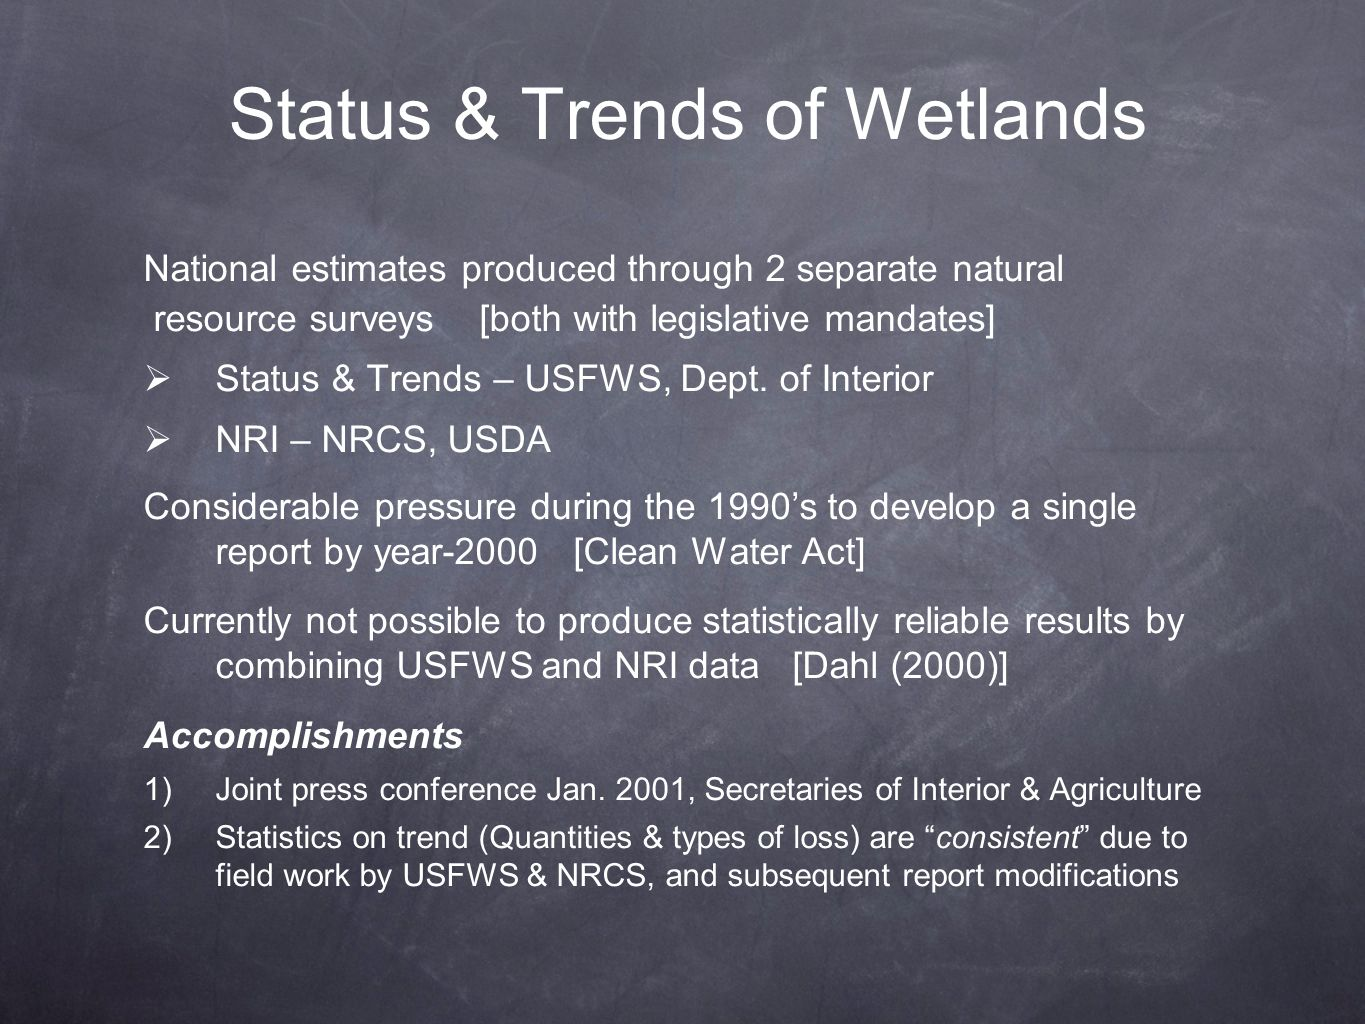 Status & Trends of Wetlands